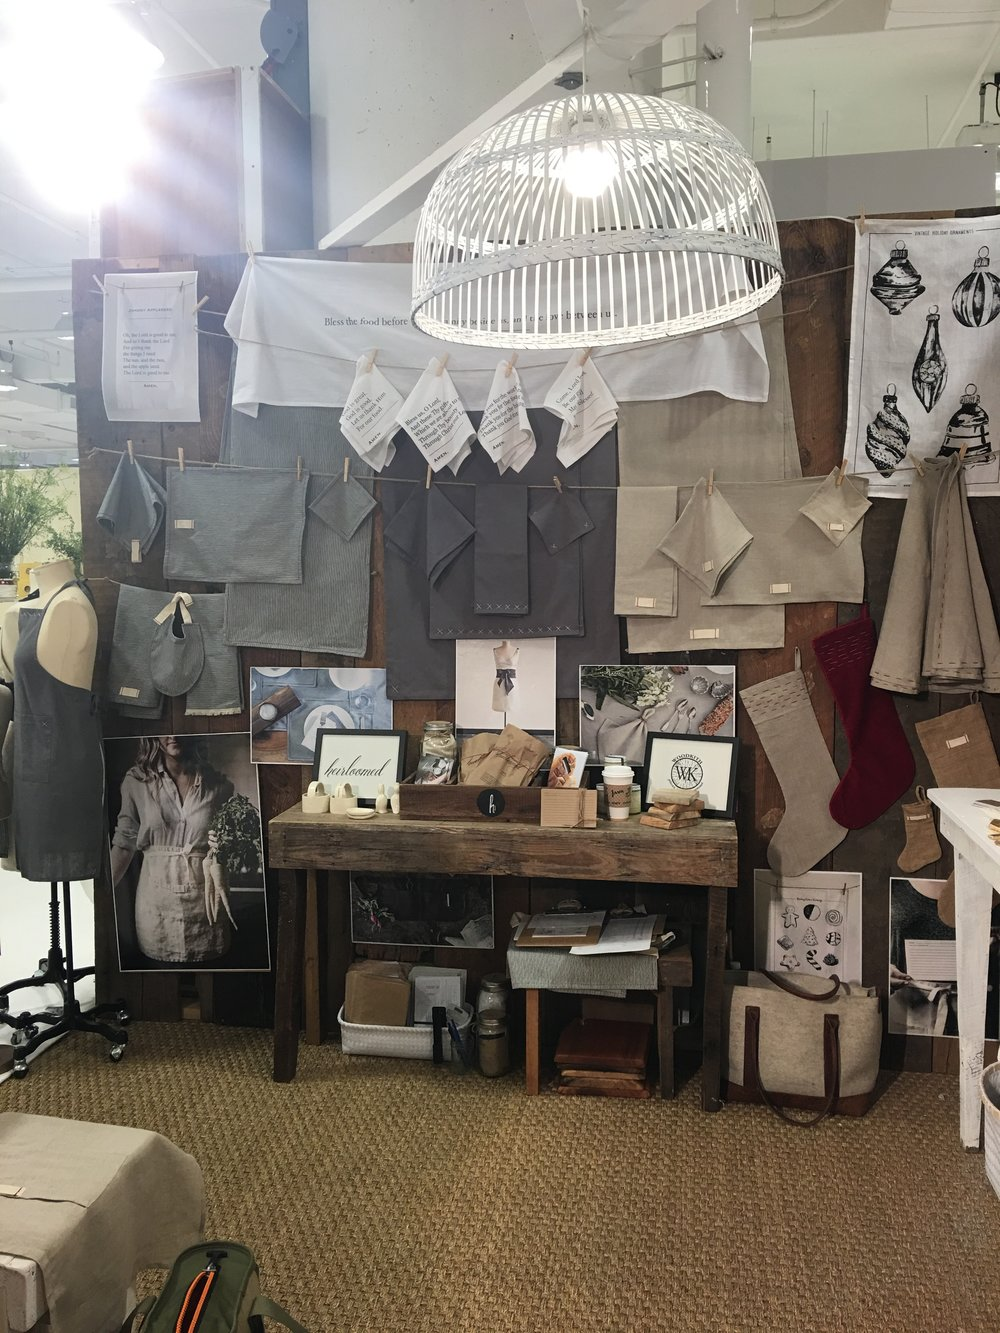 heirloomed collection always perfects her booth.